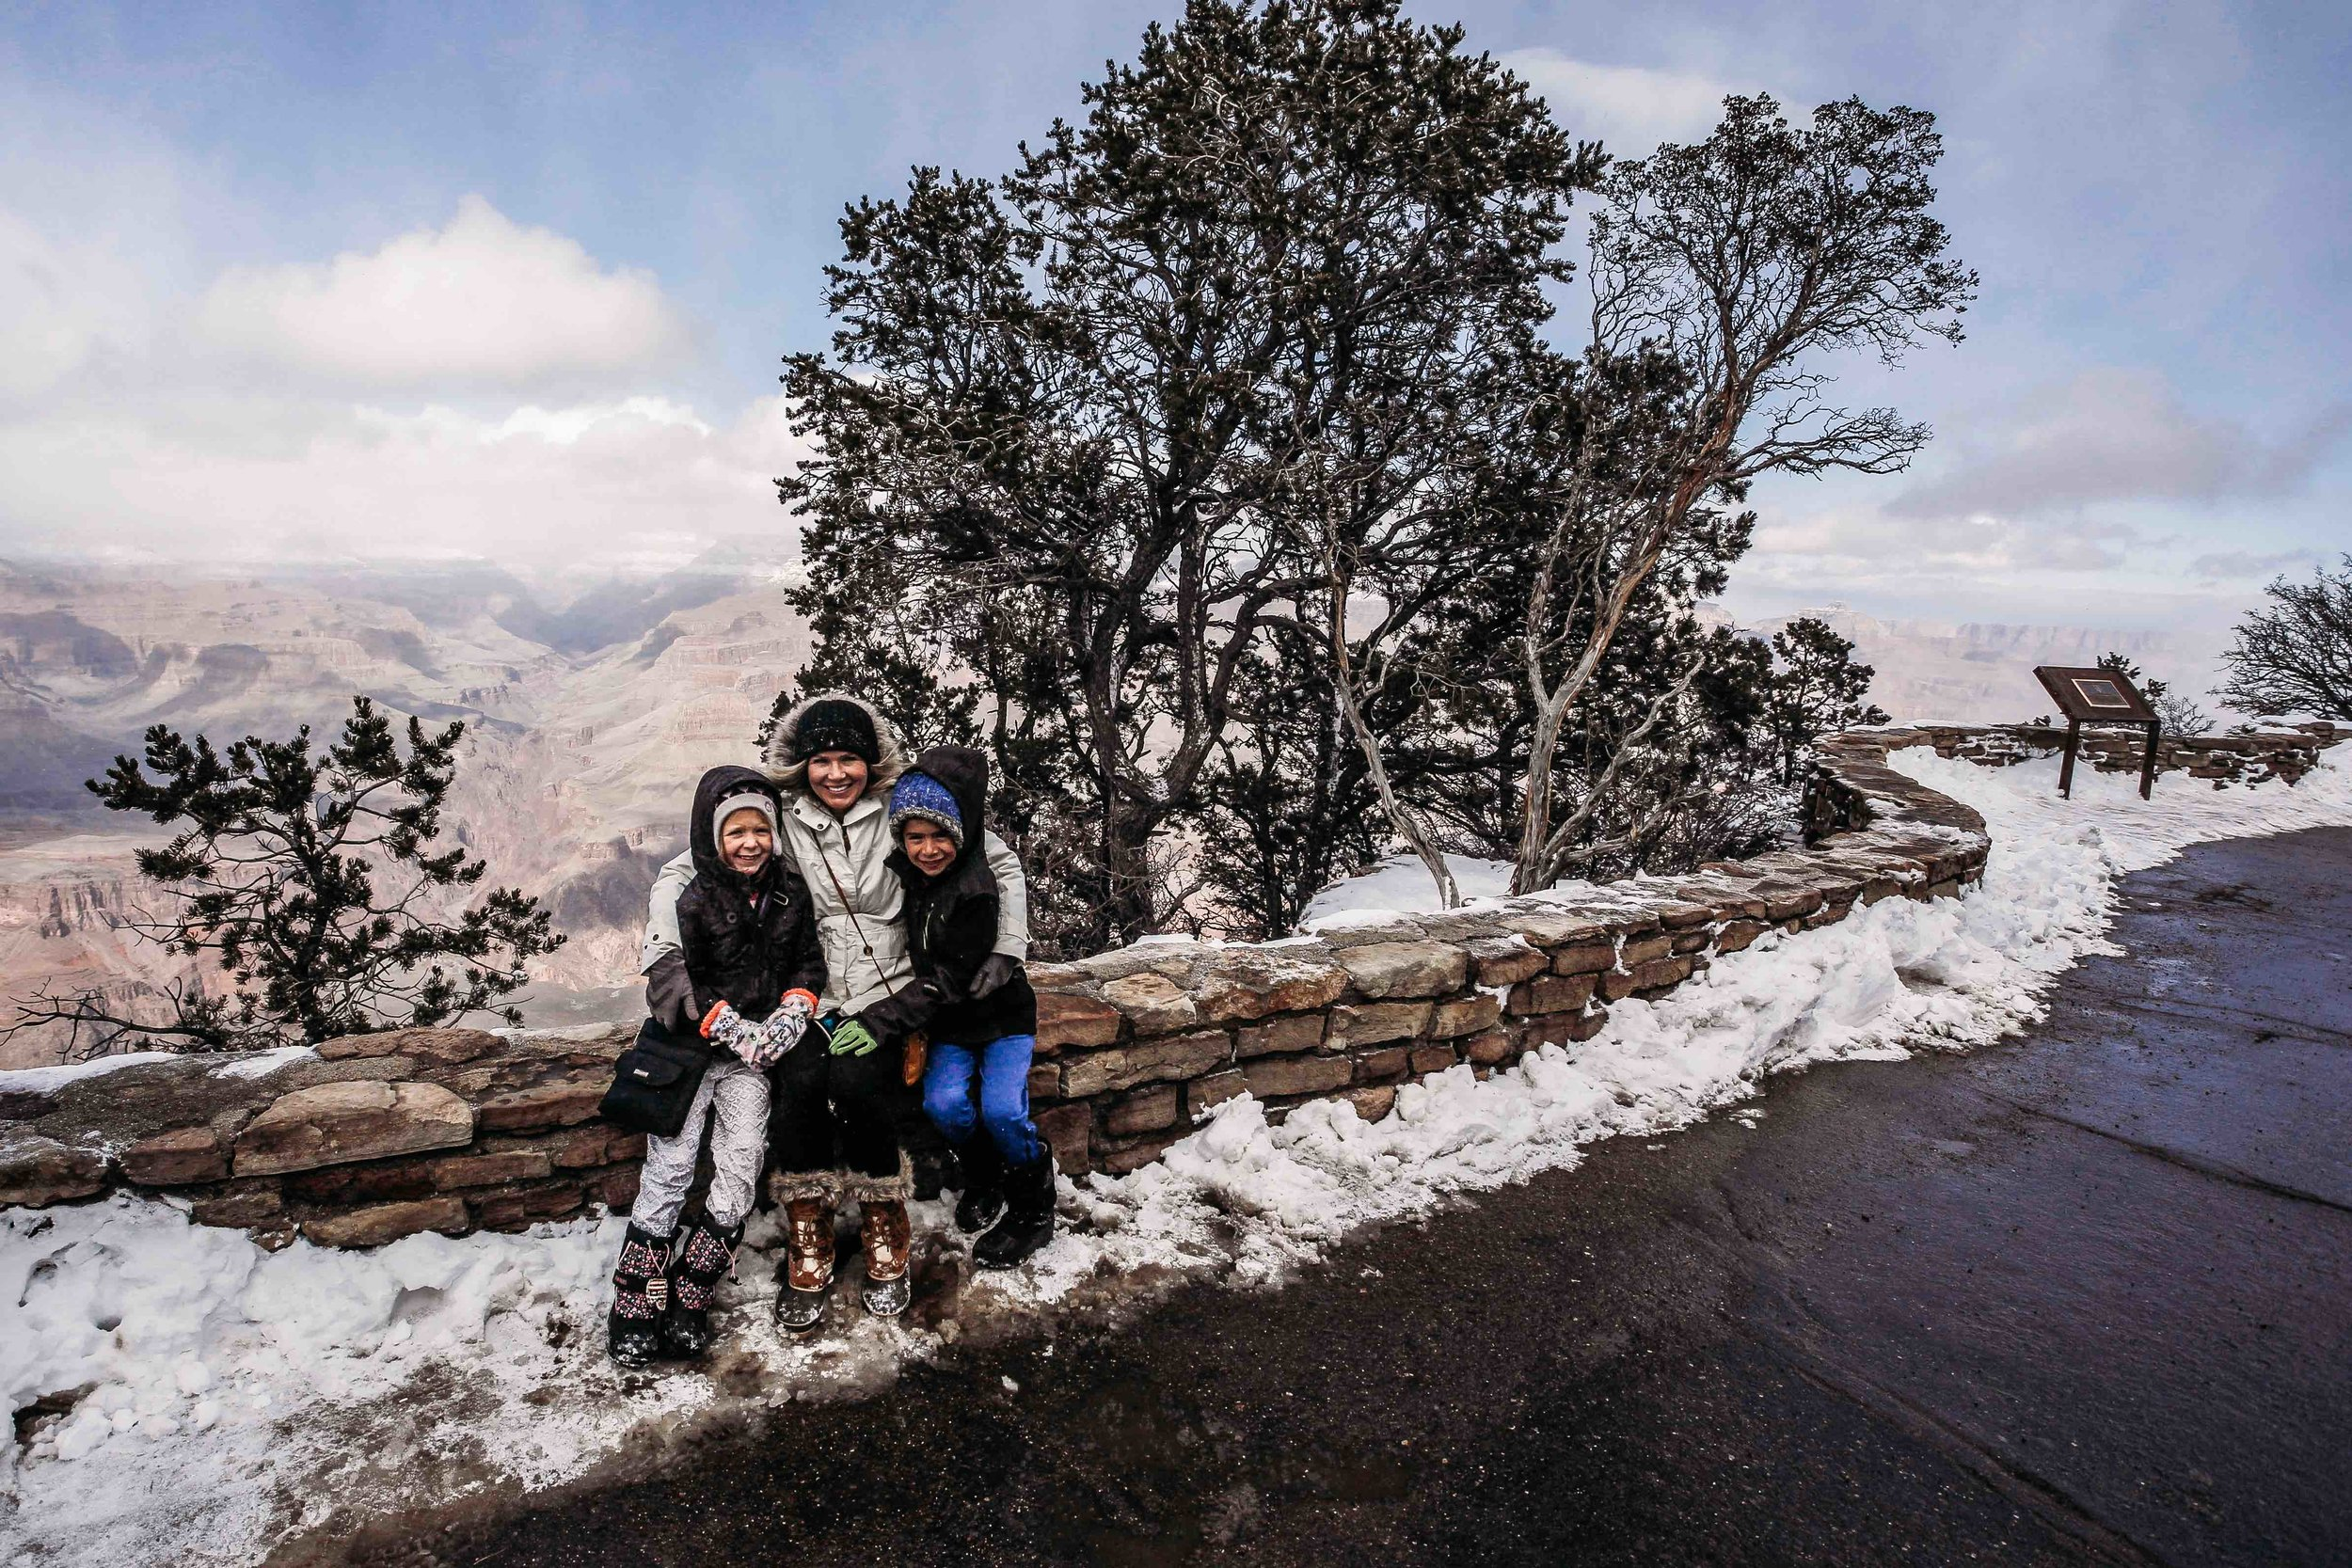 Grand Canyon Snow8.jpeg